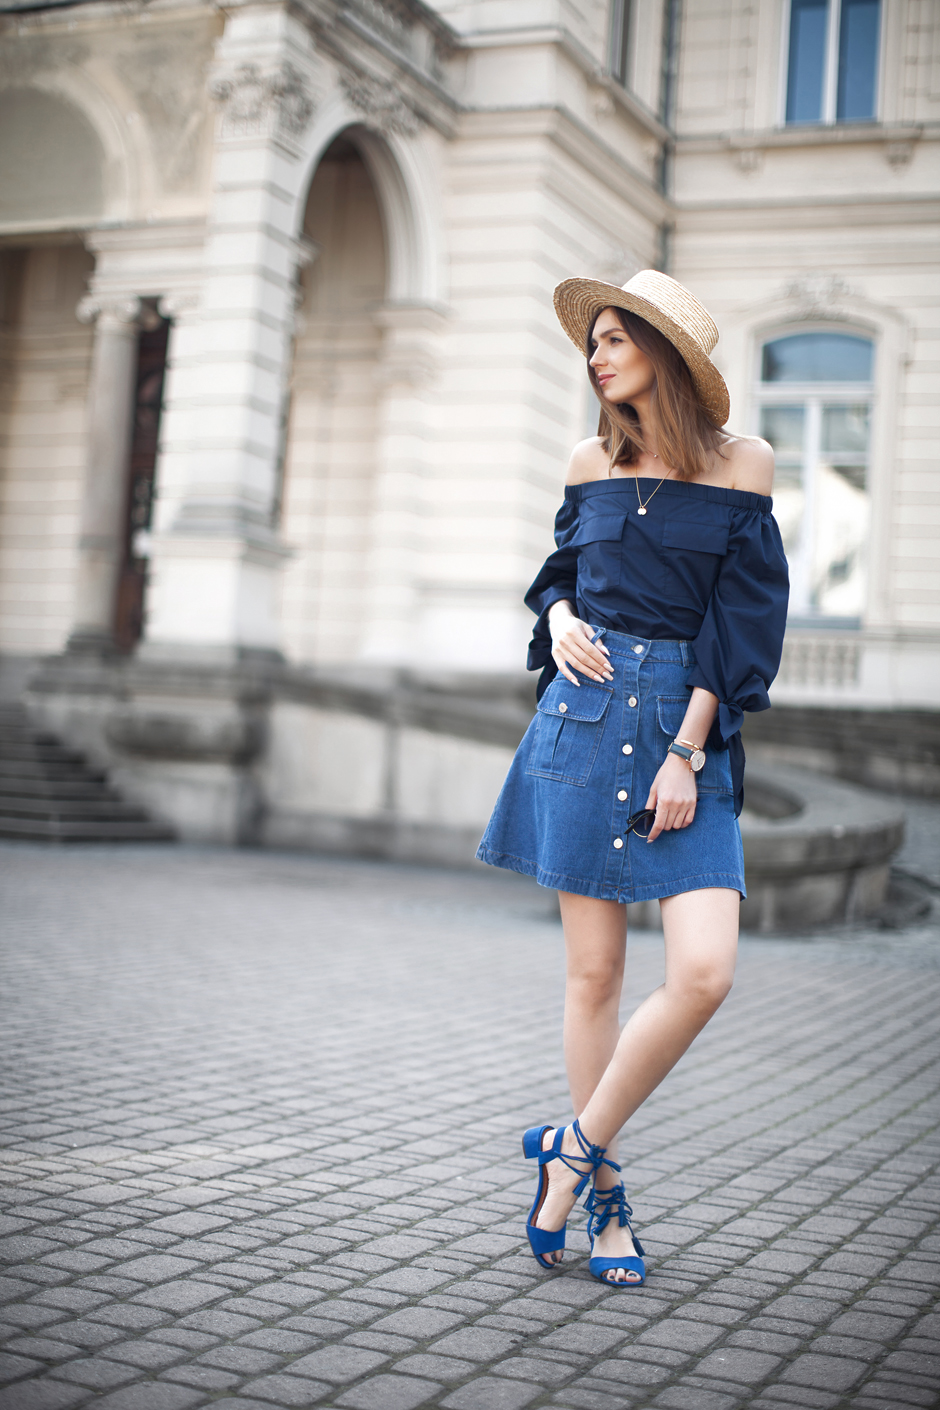 strat-hat-off-shoulder-top-outfit-street-style